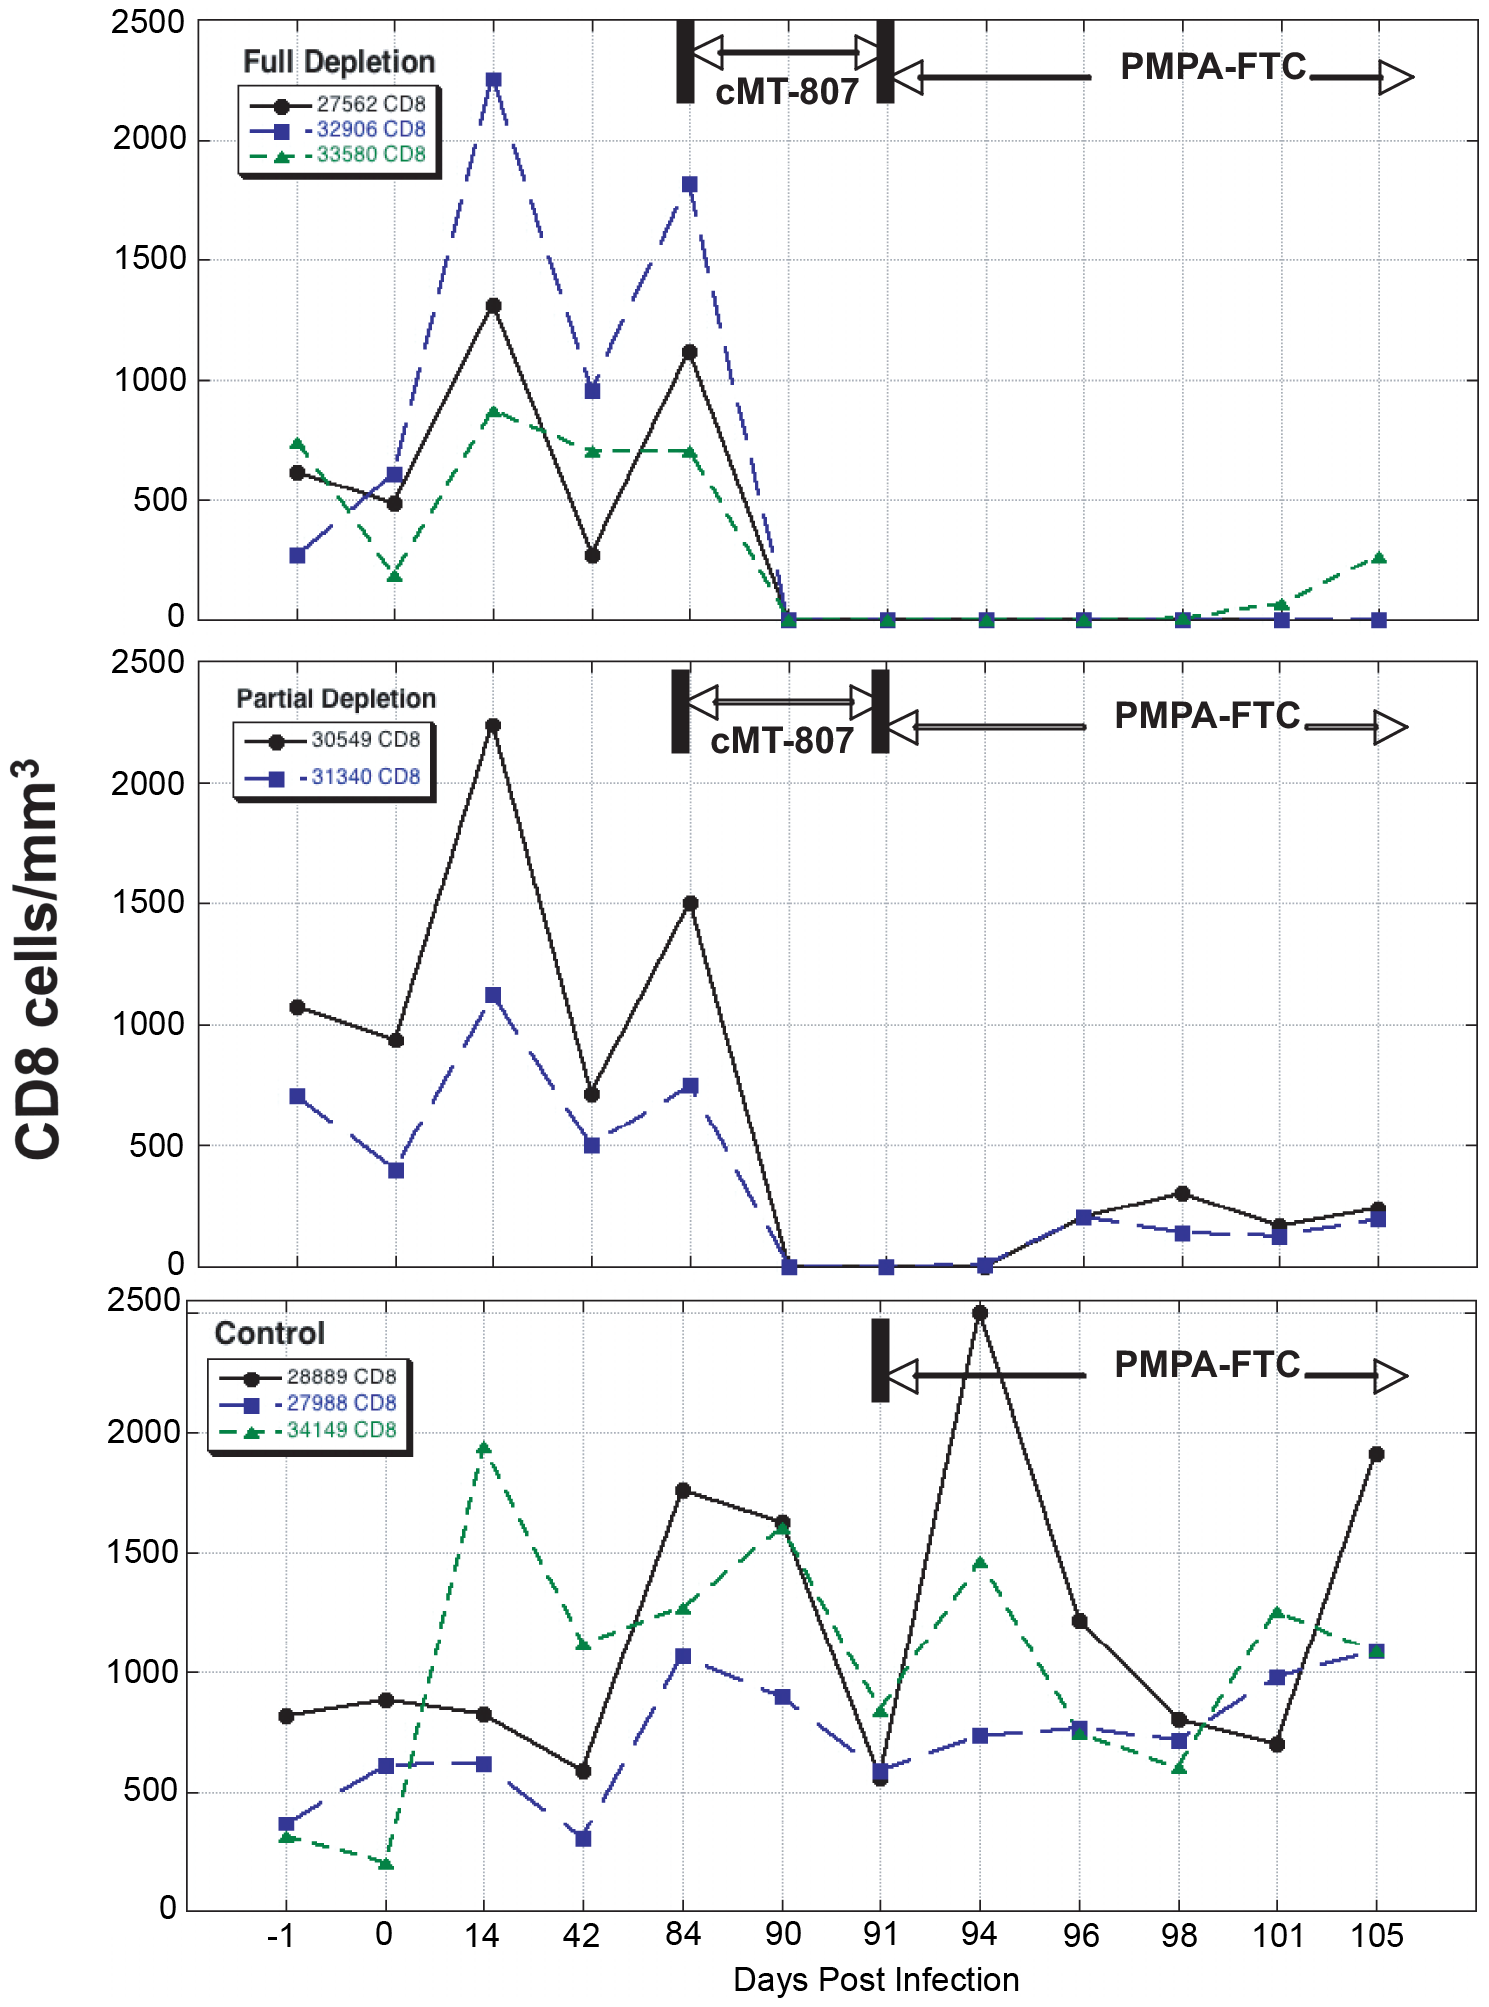 CD8 T-cell concentrations before, following treatment with cMT-807 antibody and after starting PMPA/FTC.